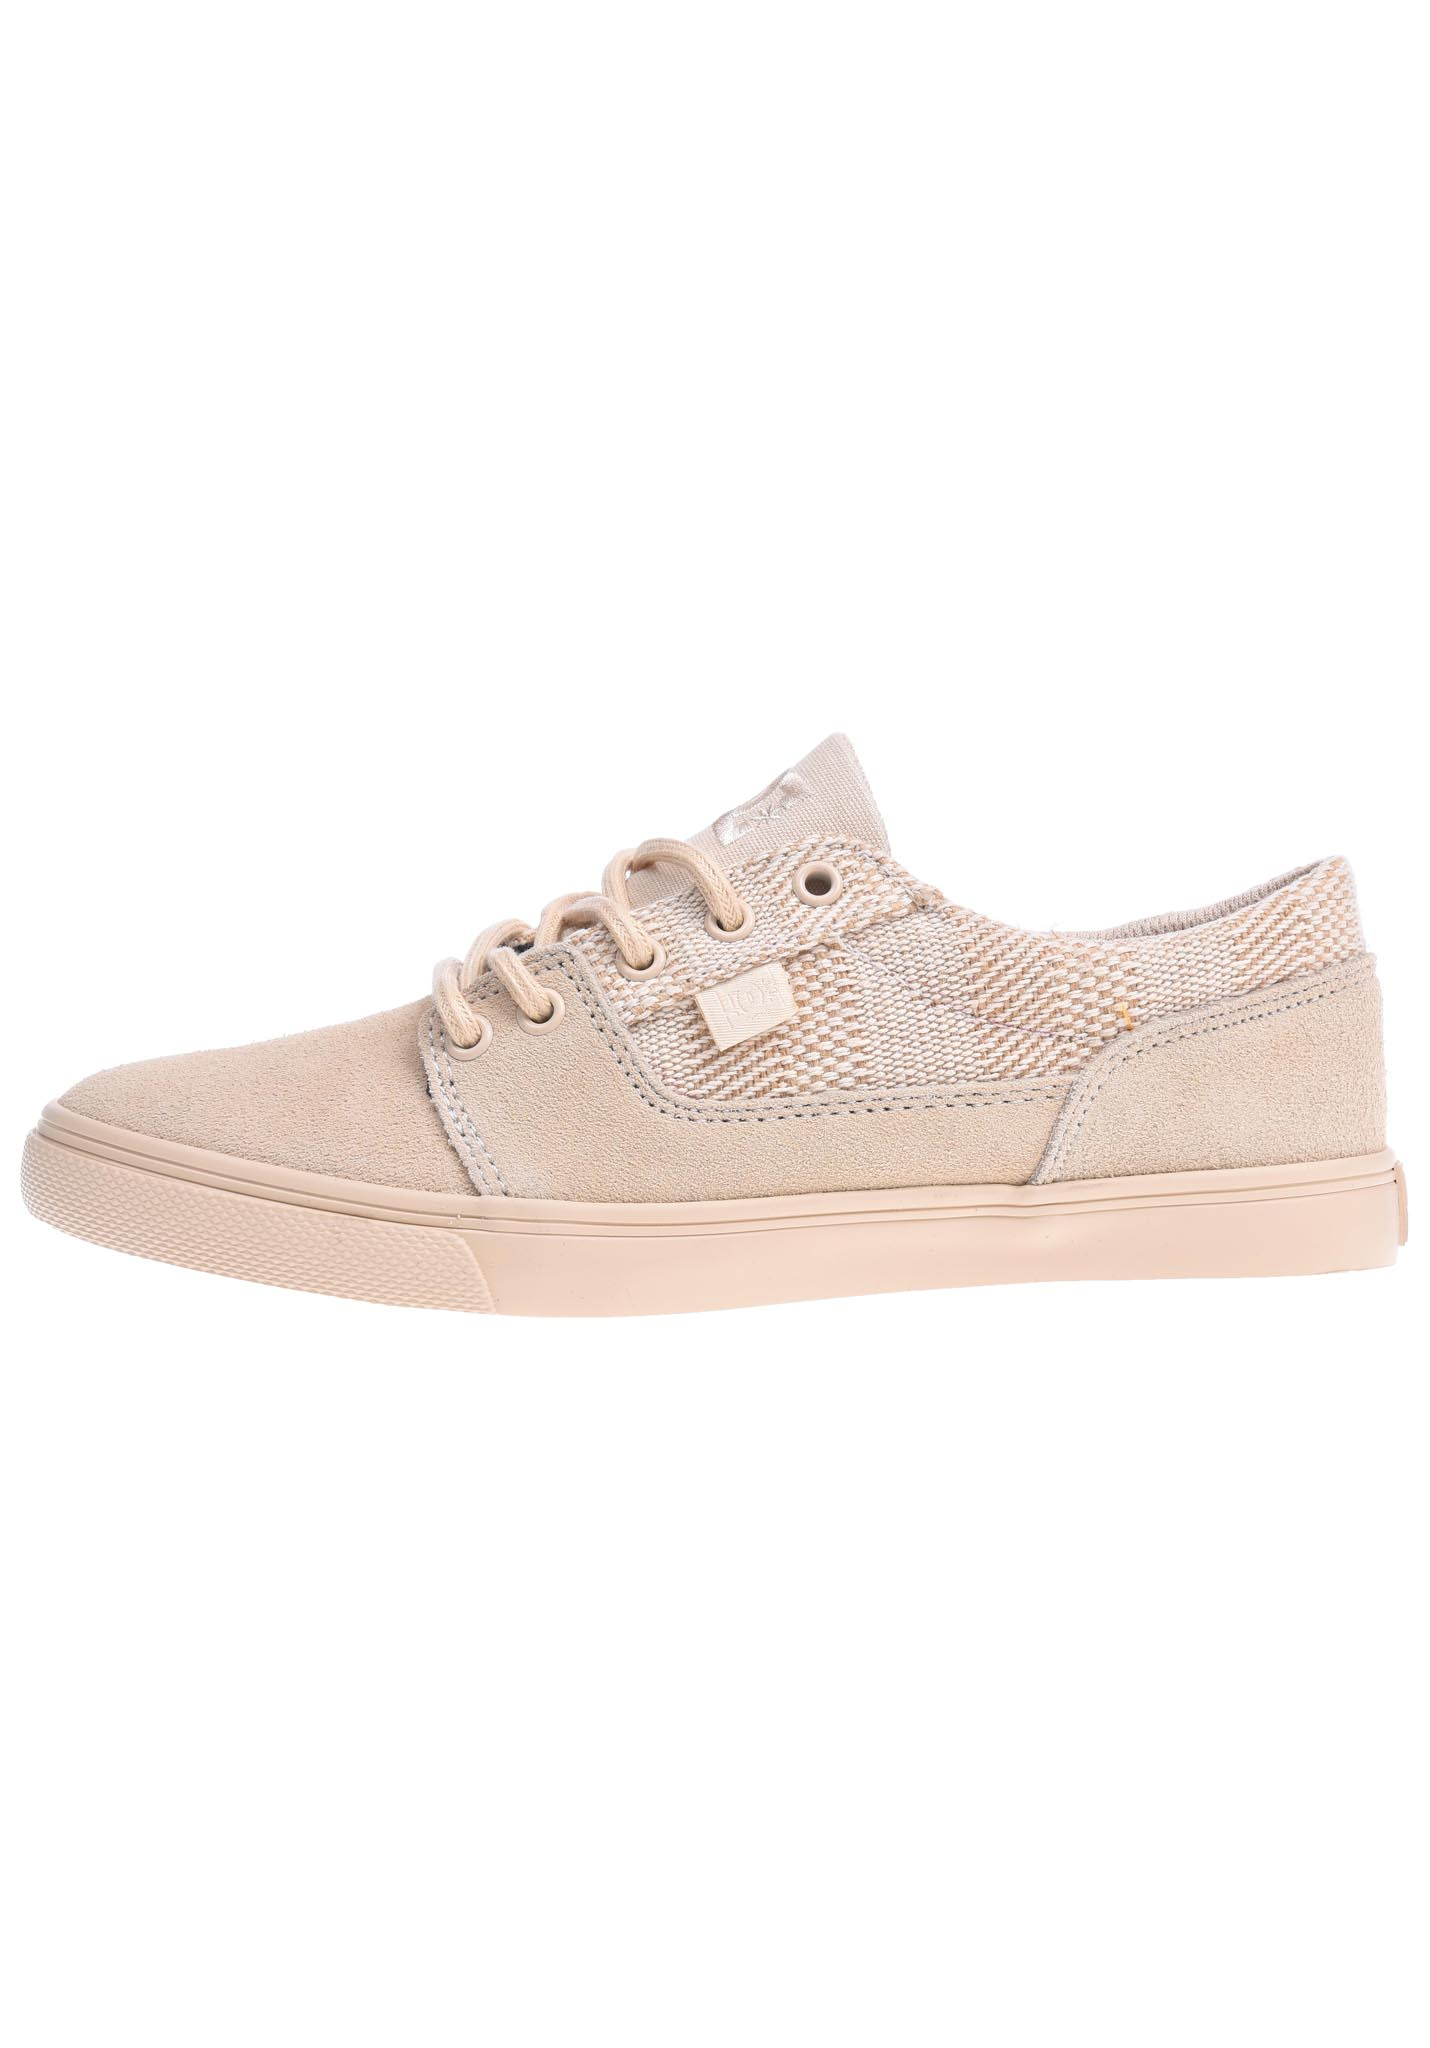 competitive price 7ed33 8e8f6 DC Tonik SE - Sneakers for Women - Beige